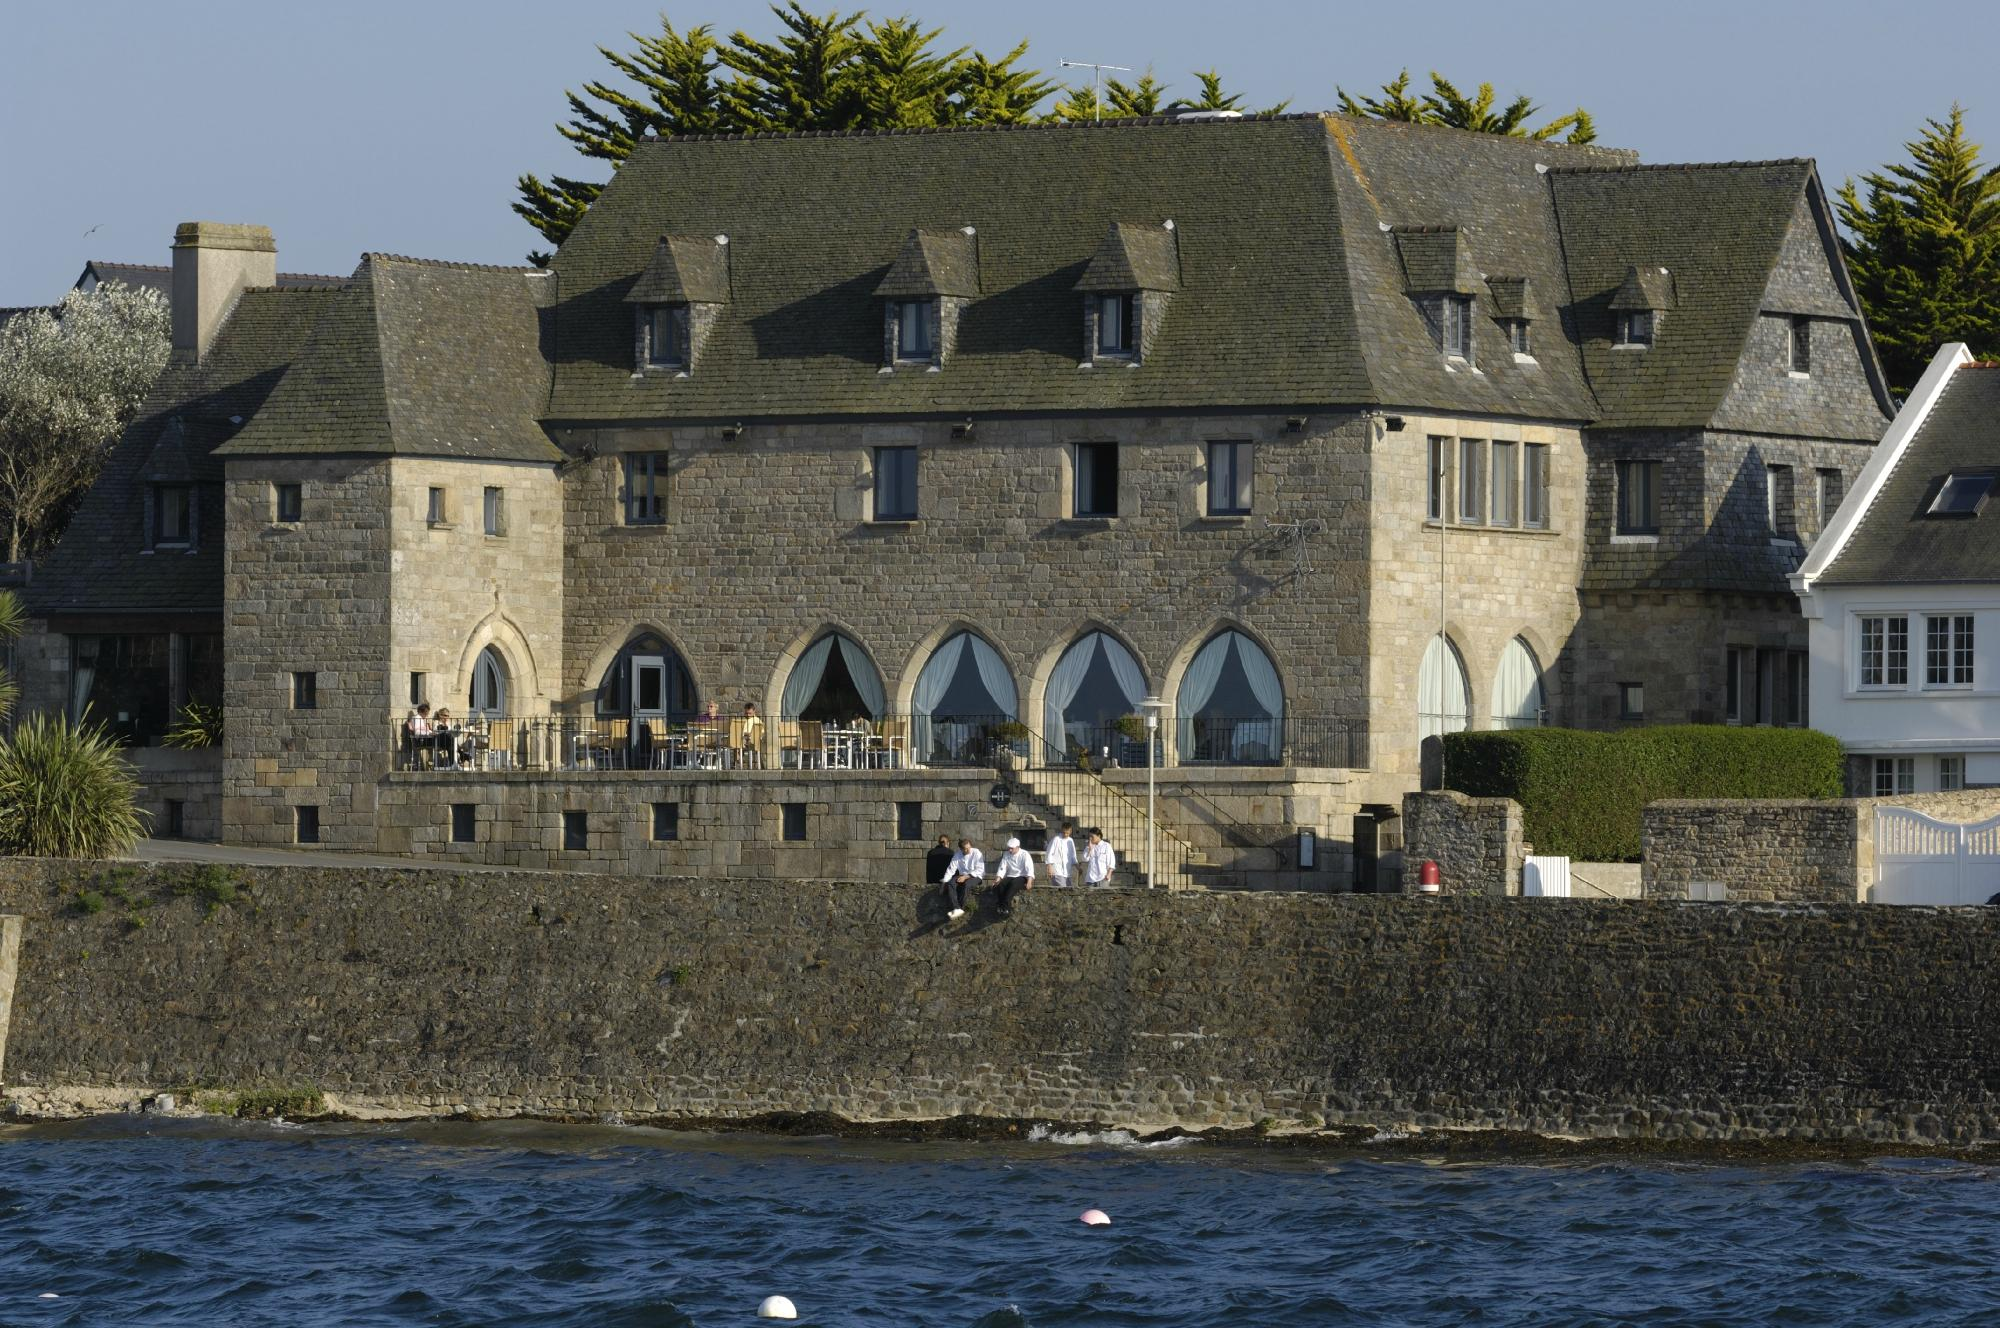 Hotel Le Brittany